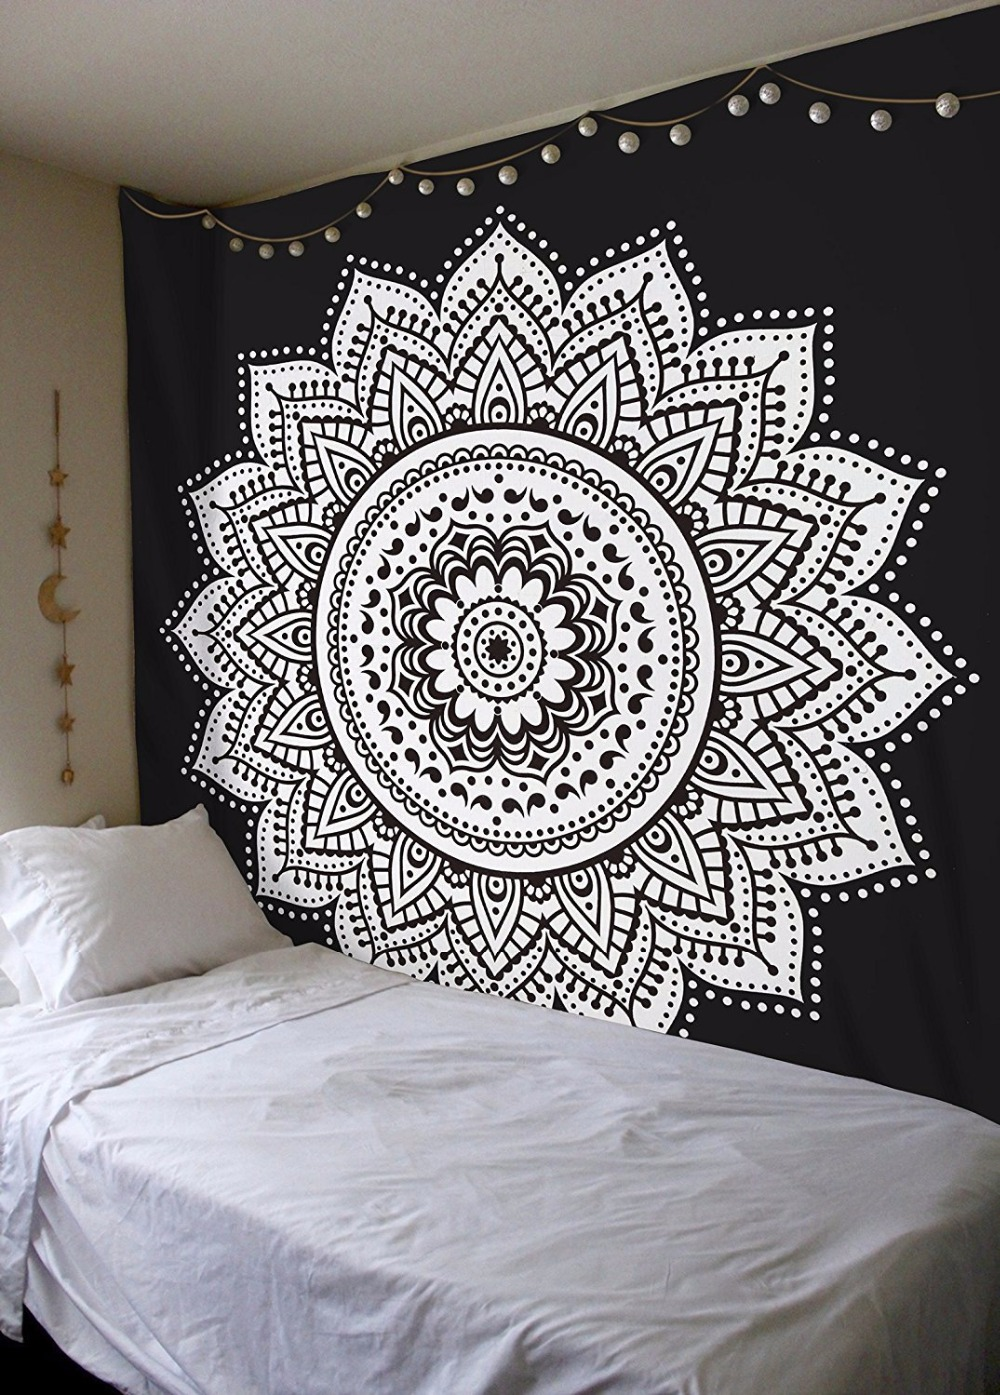 floral wall tapestries promotion shop for promotional floral wall home decor wall tapestry mandala floral art hanging tapestry black and white blue indian boho wall hippie tapis carpet sheet